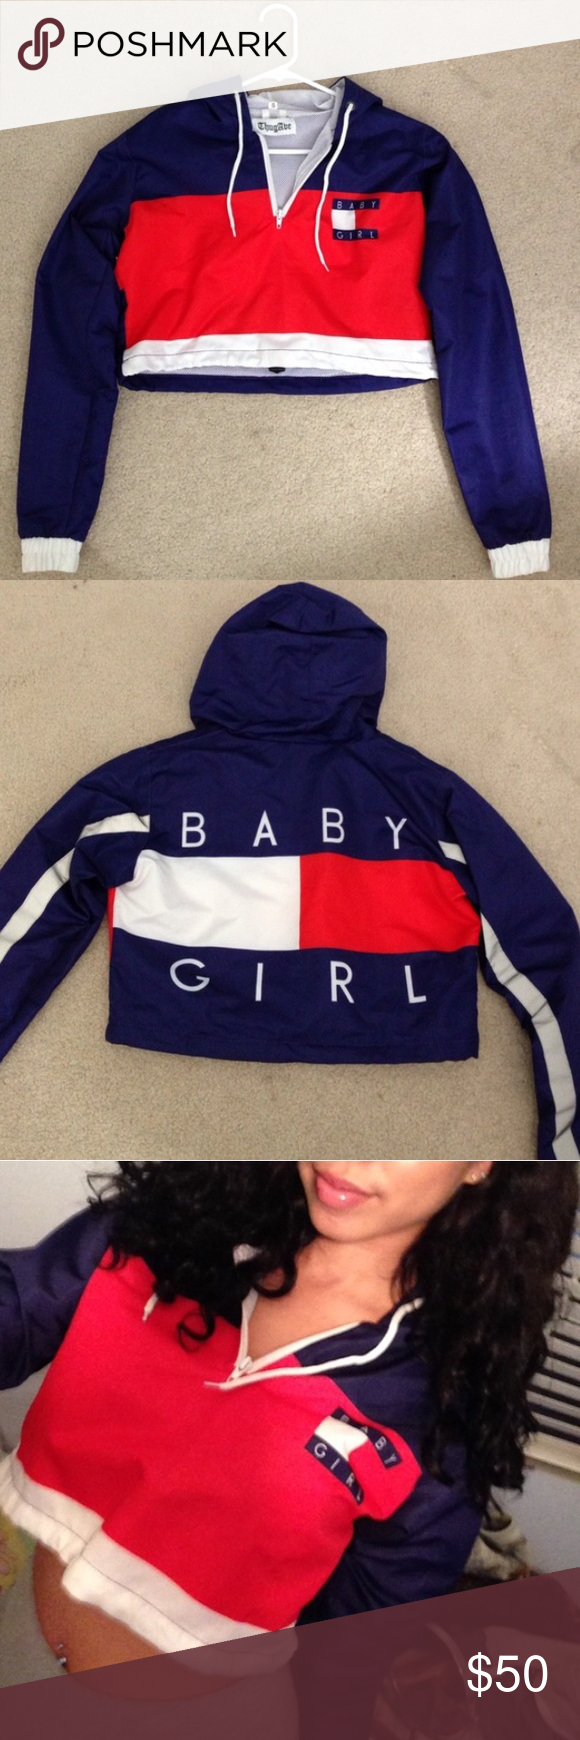 9894689eb Hard to let go. Aaliyah inspired baby girl windbreaker. Simply too small  for me it's a size small but runs like an extra small I prefer a medium!